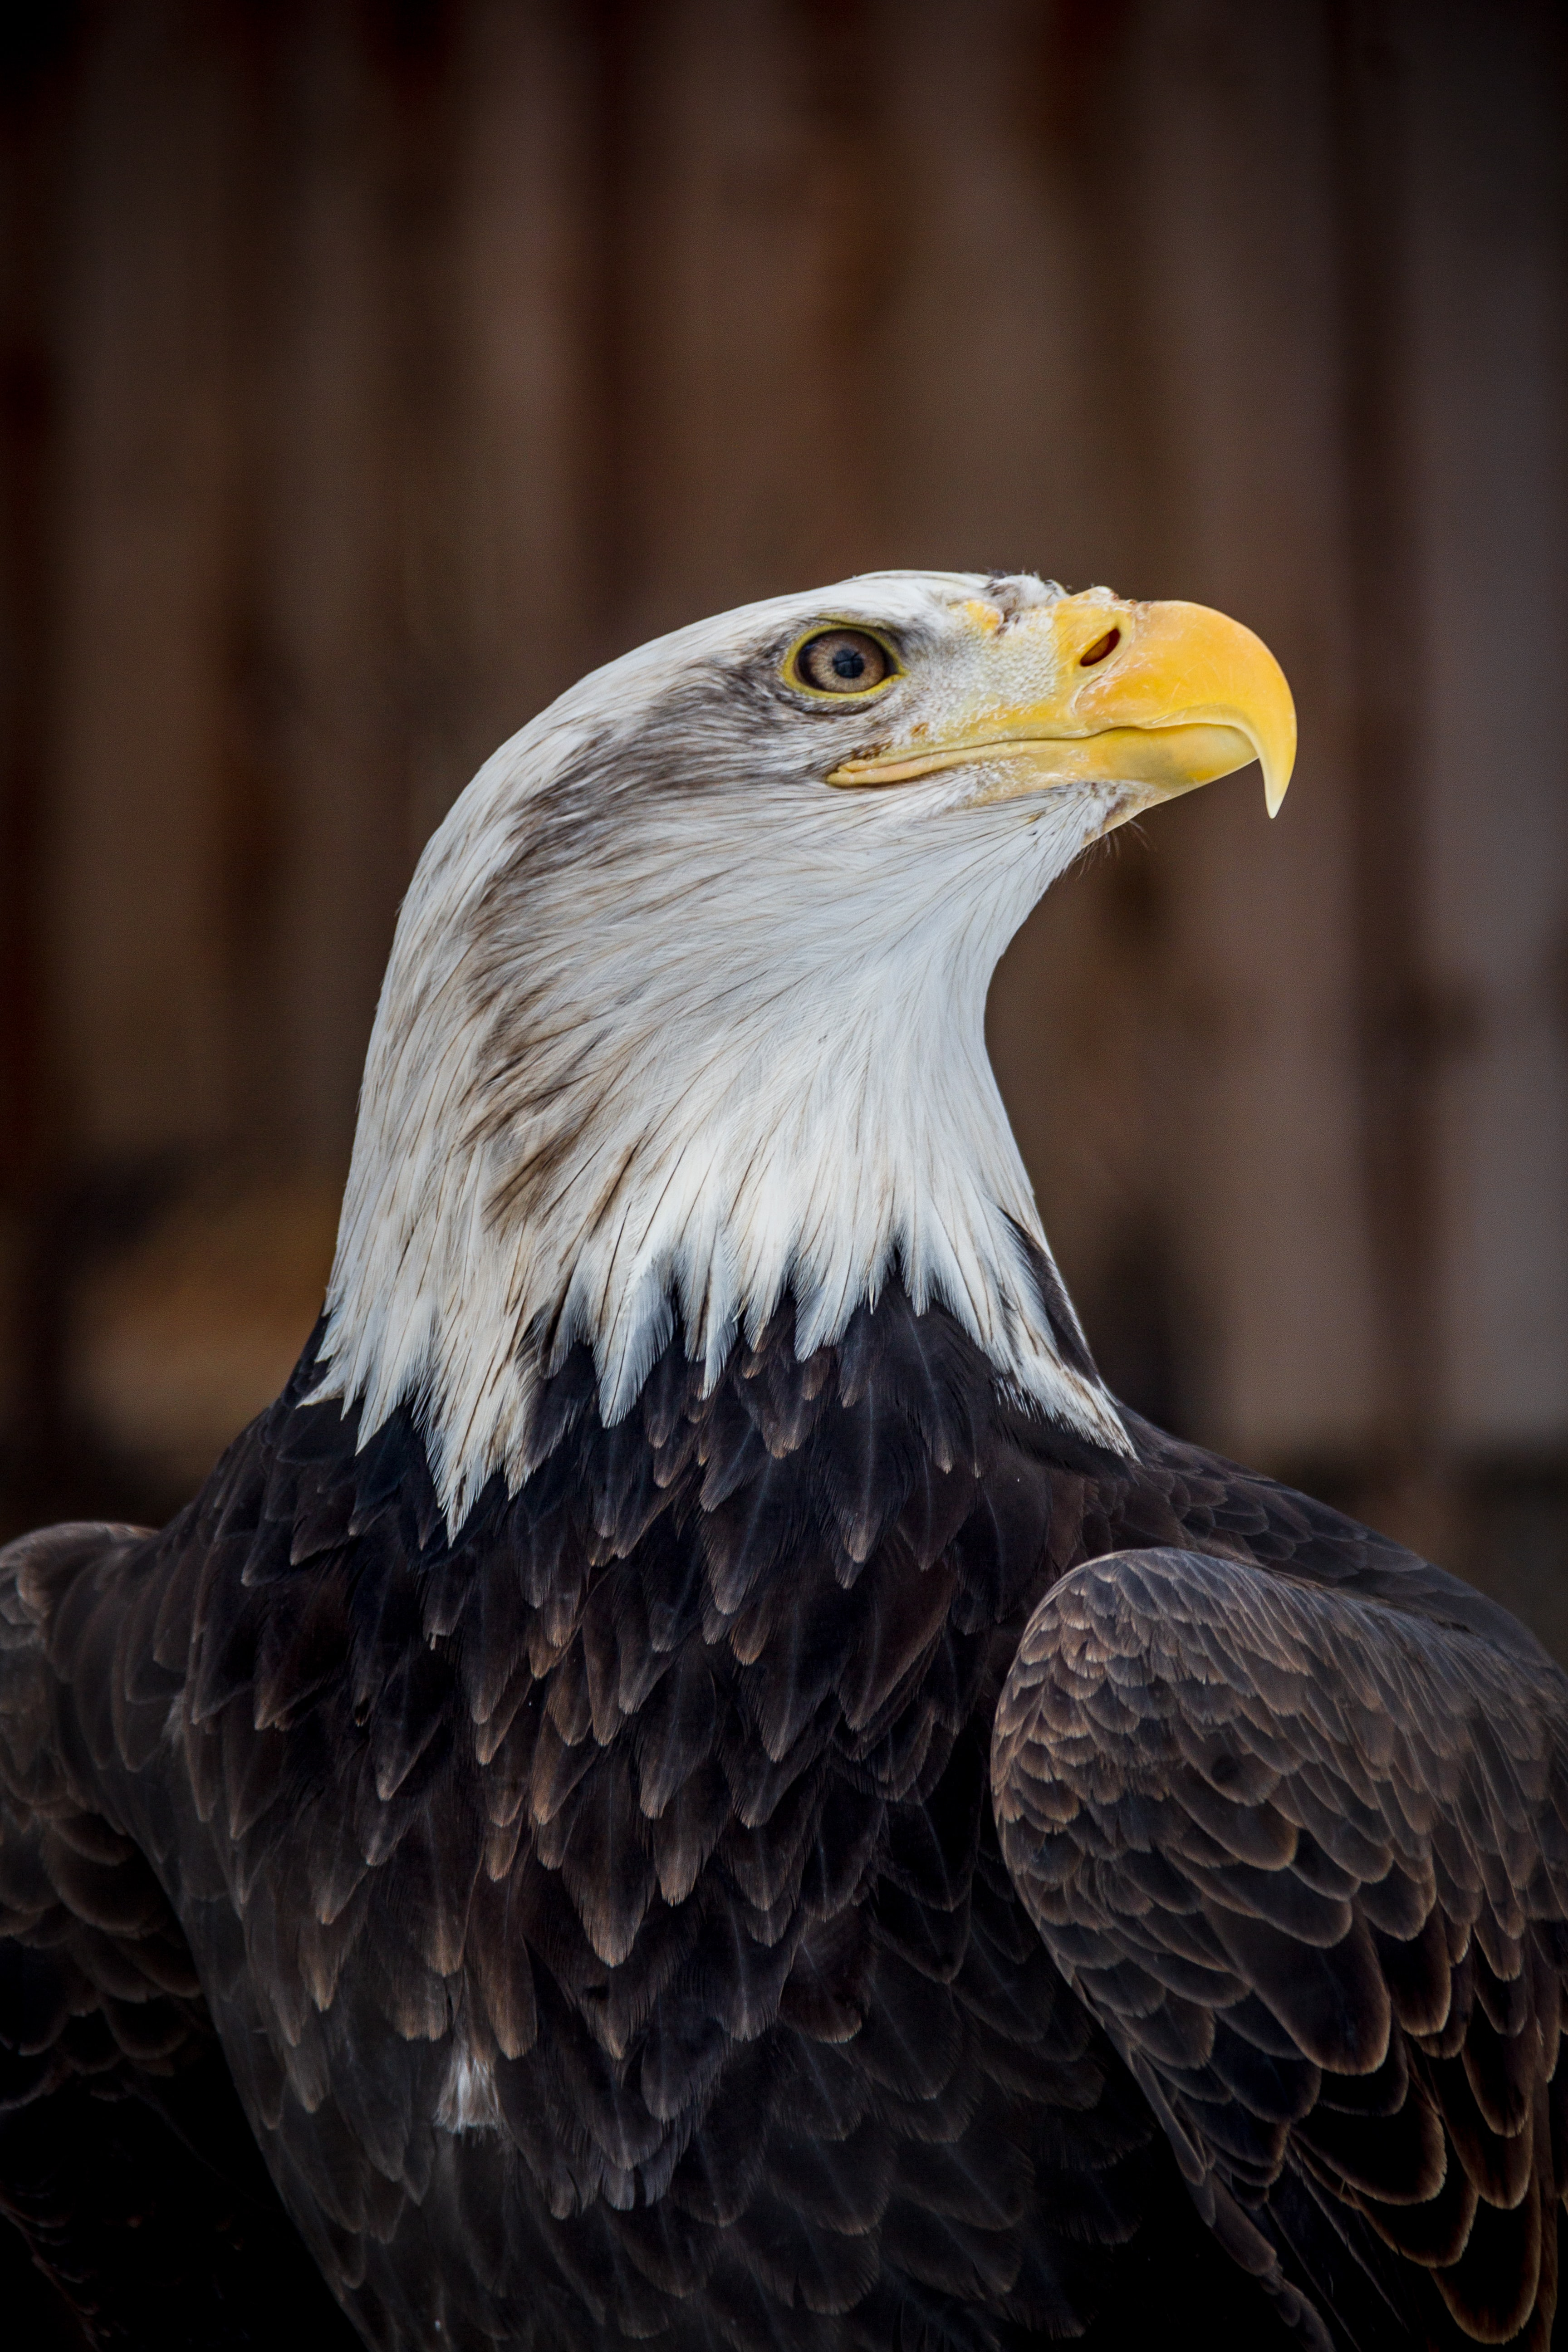 140519 download wallpaper Animals, Bald Eagle, White-Headed Eagle, Eagle, Bird, Predator, Brown screensavers and pictures for free